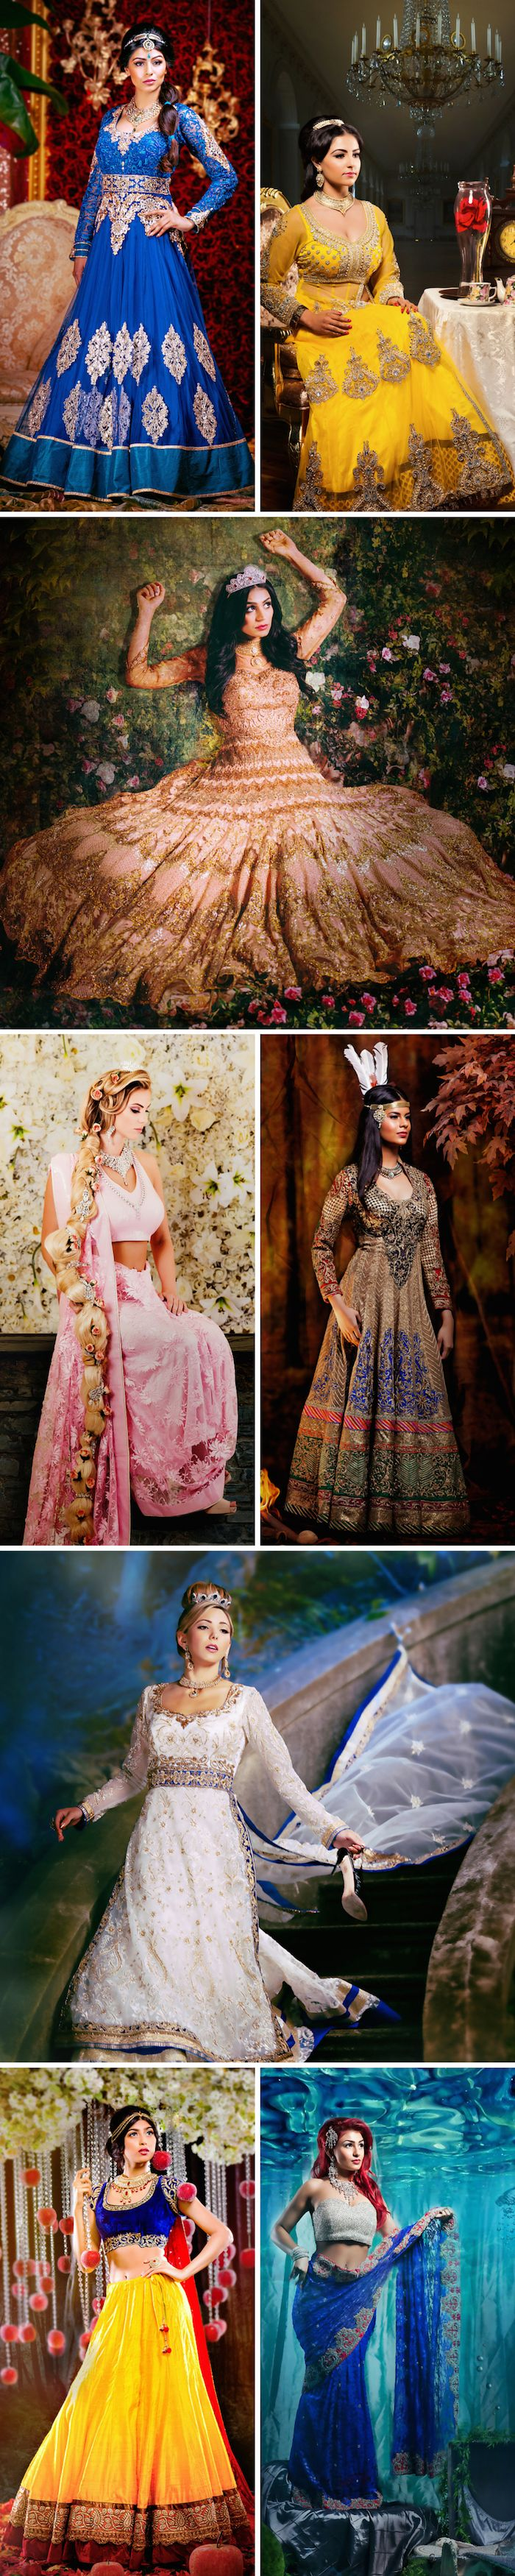 Disney Princesses Indian style | Photography by AMRIT